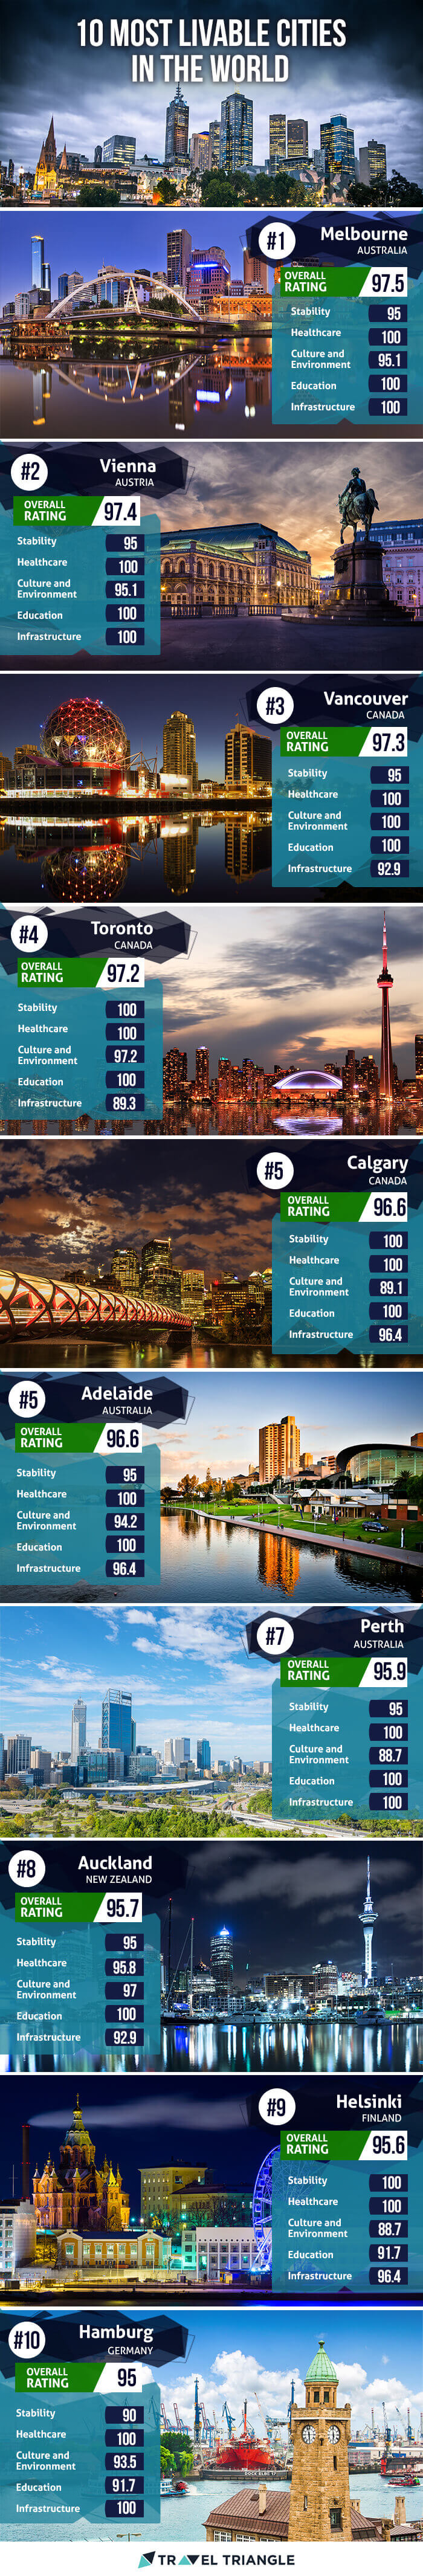 An infographic of the most livable cities in the world as listed by the Economist Intelligence Unit